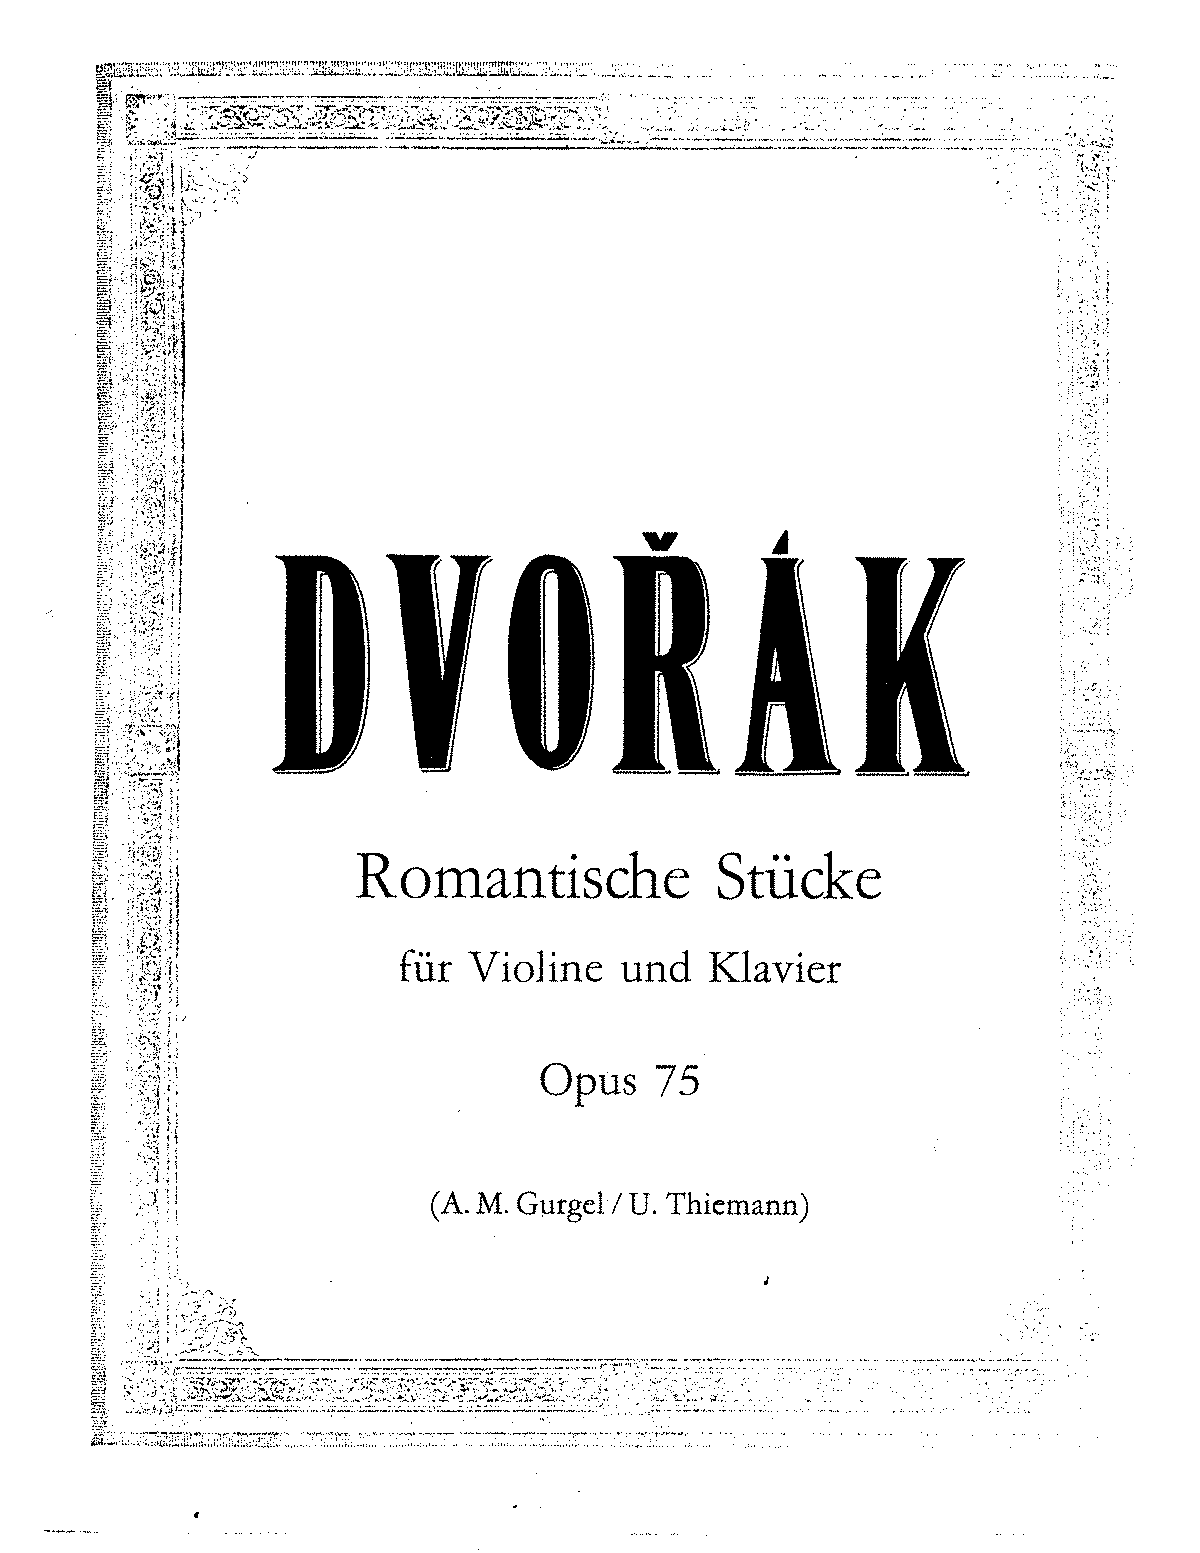 Dvorak - Op.75 - 4 Romantic Pieces for Violin and Piano.pdf